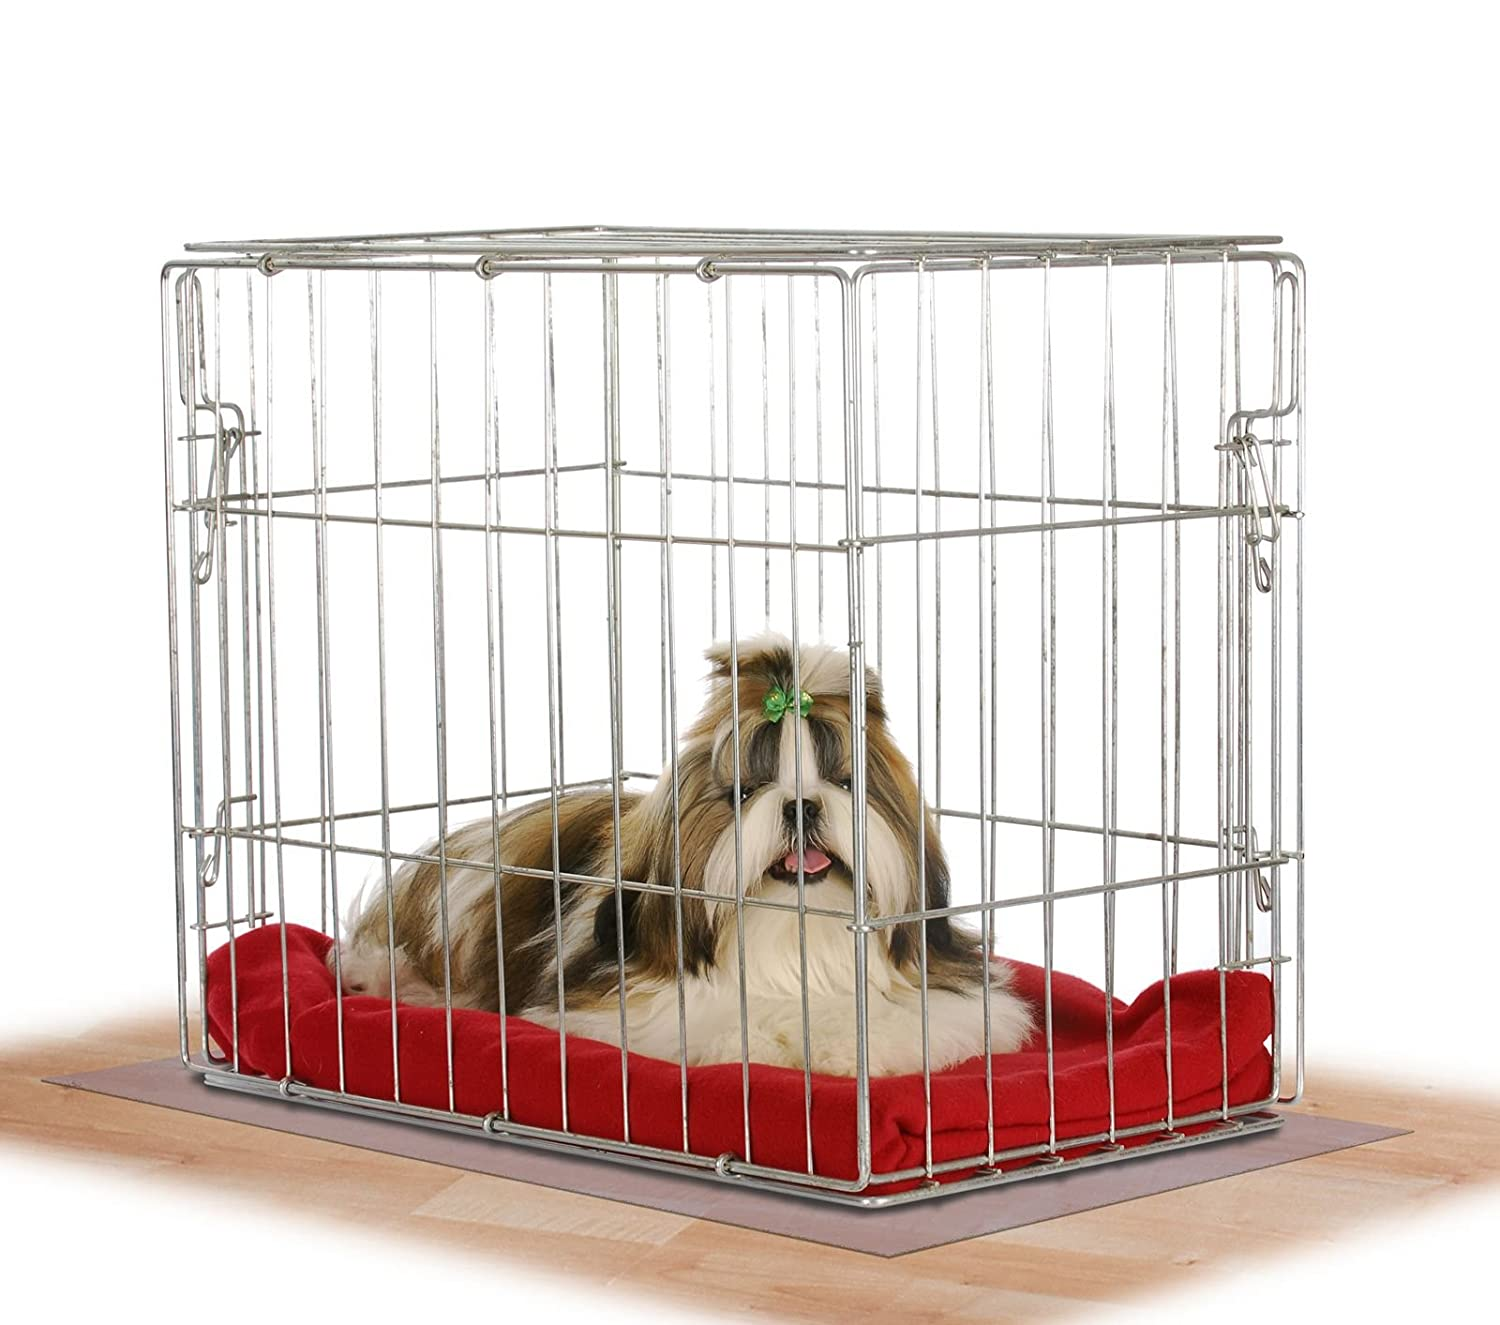 Rubber mats dog run - Amazon Com Tex Polycarbonate Dog Crate Floor Protector For Crates Up To 30 X 48 Inches 48 X 53 Clear Cage134er Pet Supplies